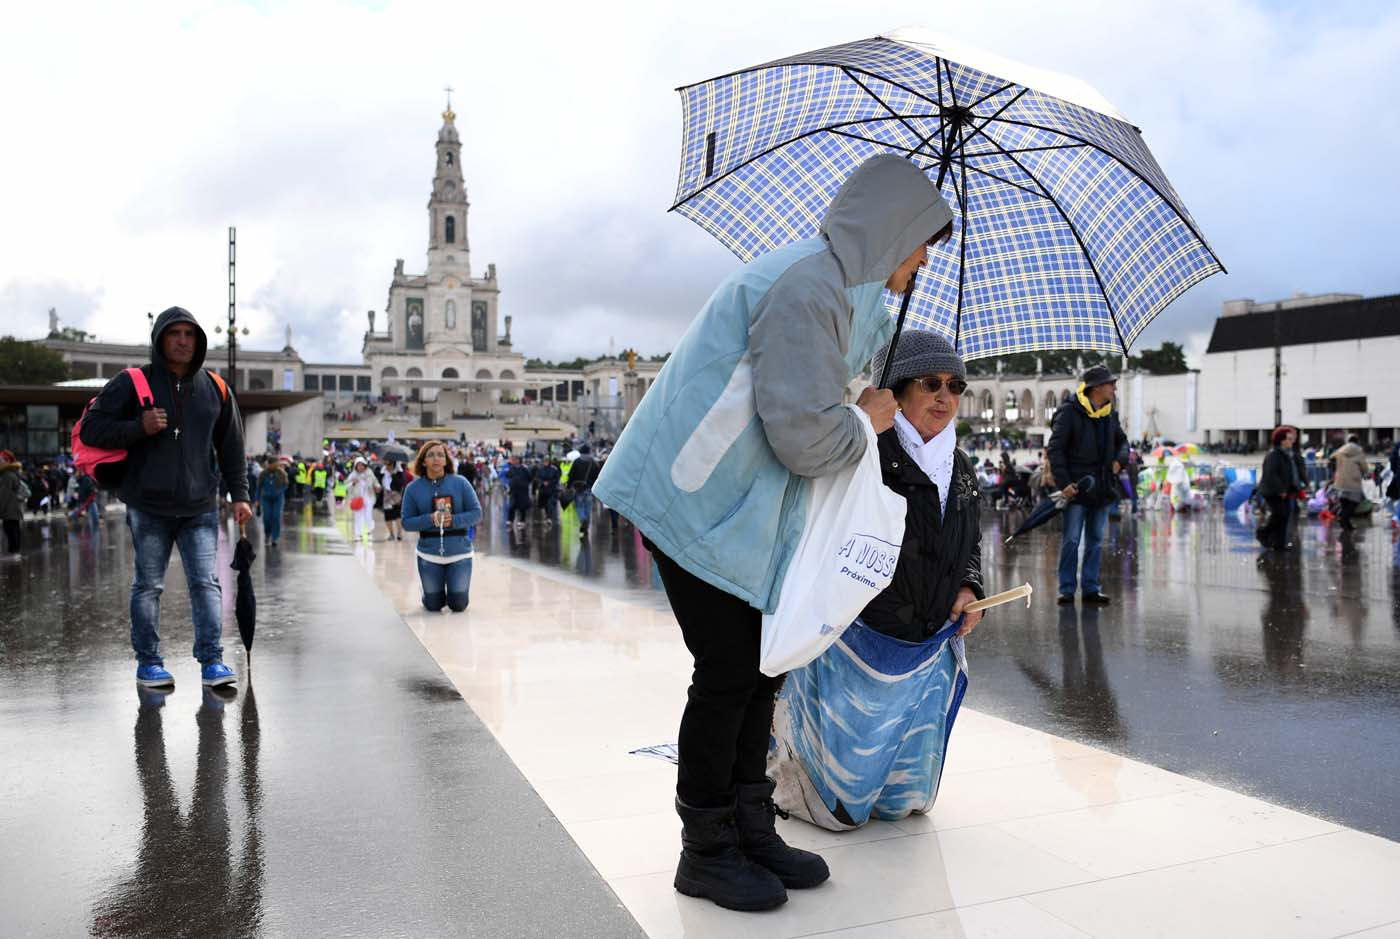 A woman covers with an umbrella another woman walking on her knees at Fatima Sanctuary, central Portugal, on May 12, 2017.  Two of the three child shepherds who reported apparitions of the Virgin Mary in Fatima, Portugal, one century ago, will be declared saints on May 13, 2017 by Pope Francis. The canonisation of Jacinta and Francisco Marto will take place during the Argentinian pontiff's visit to a Catholic shrine visited by millions of pilgrims every year. / AFP PHOTO / Francisco LEONG